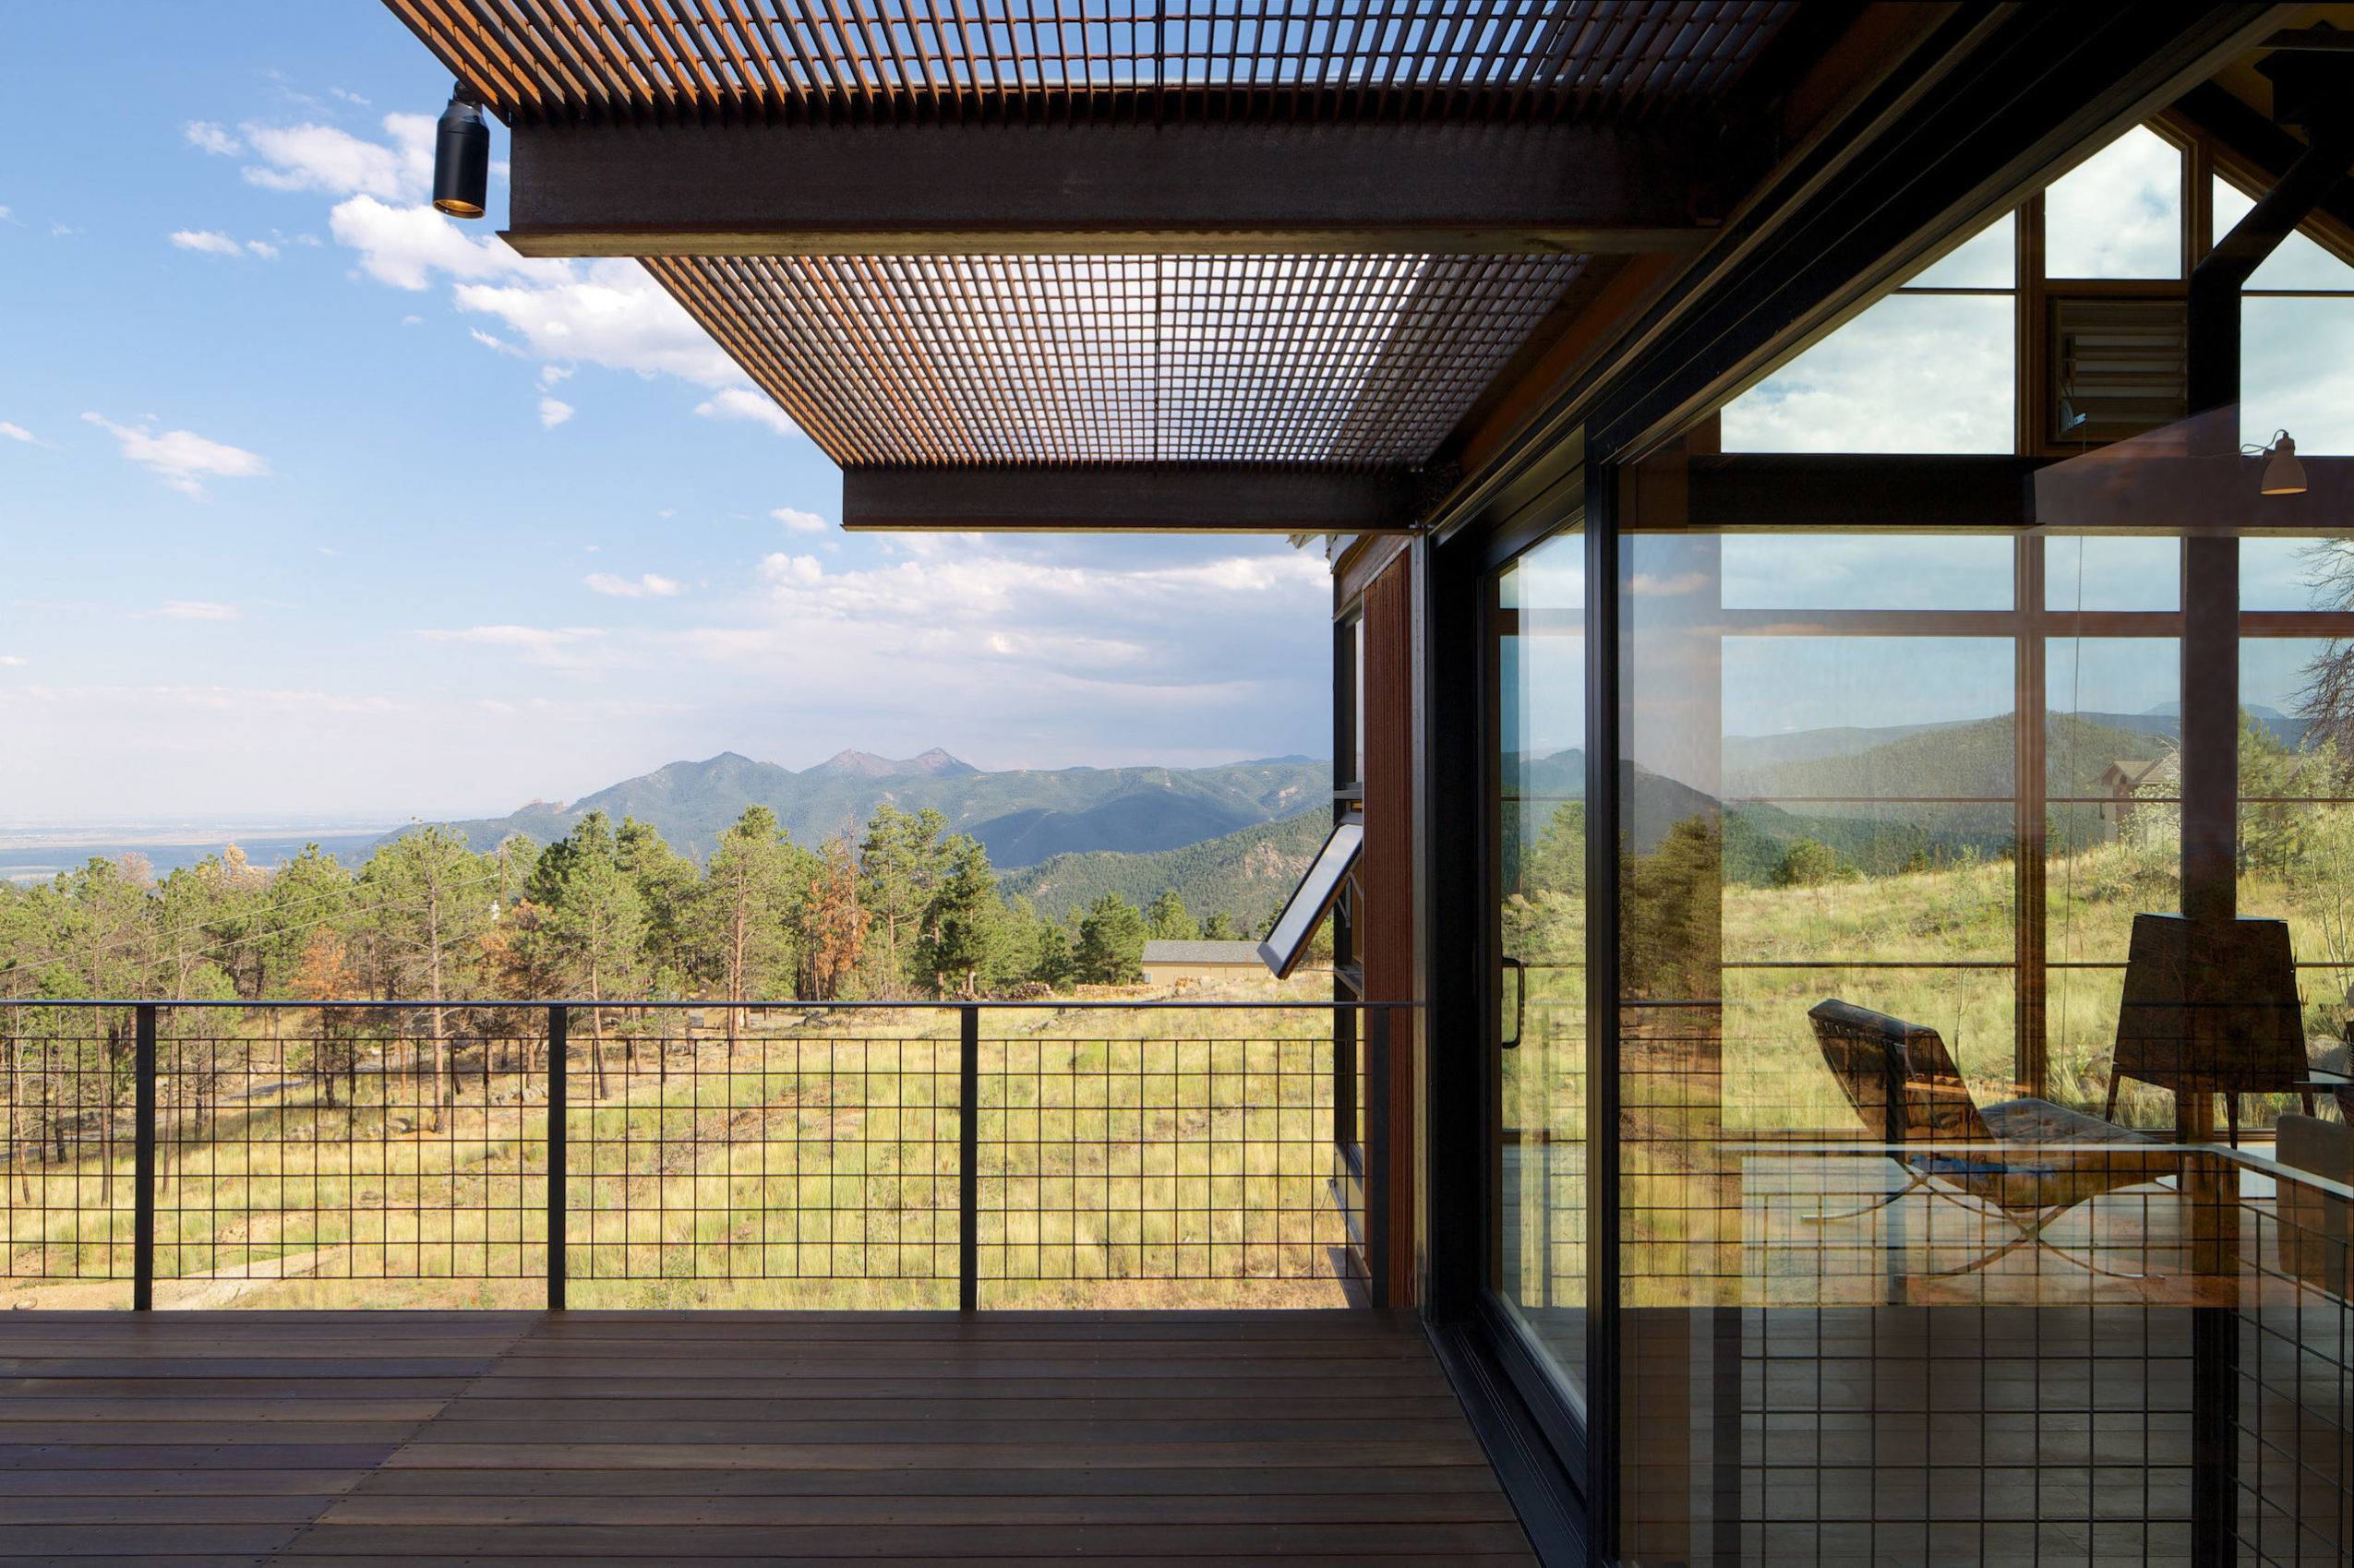 Roof deck at Sunshine Canyon House by Renée del Gaudio Architecture.